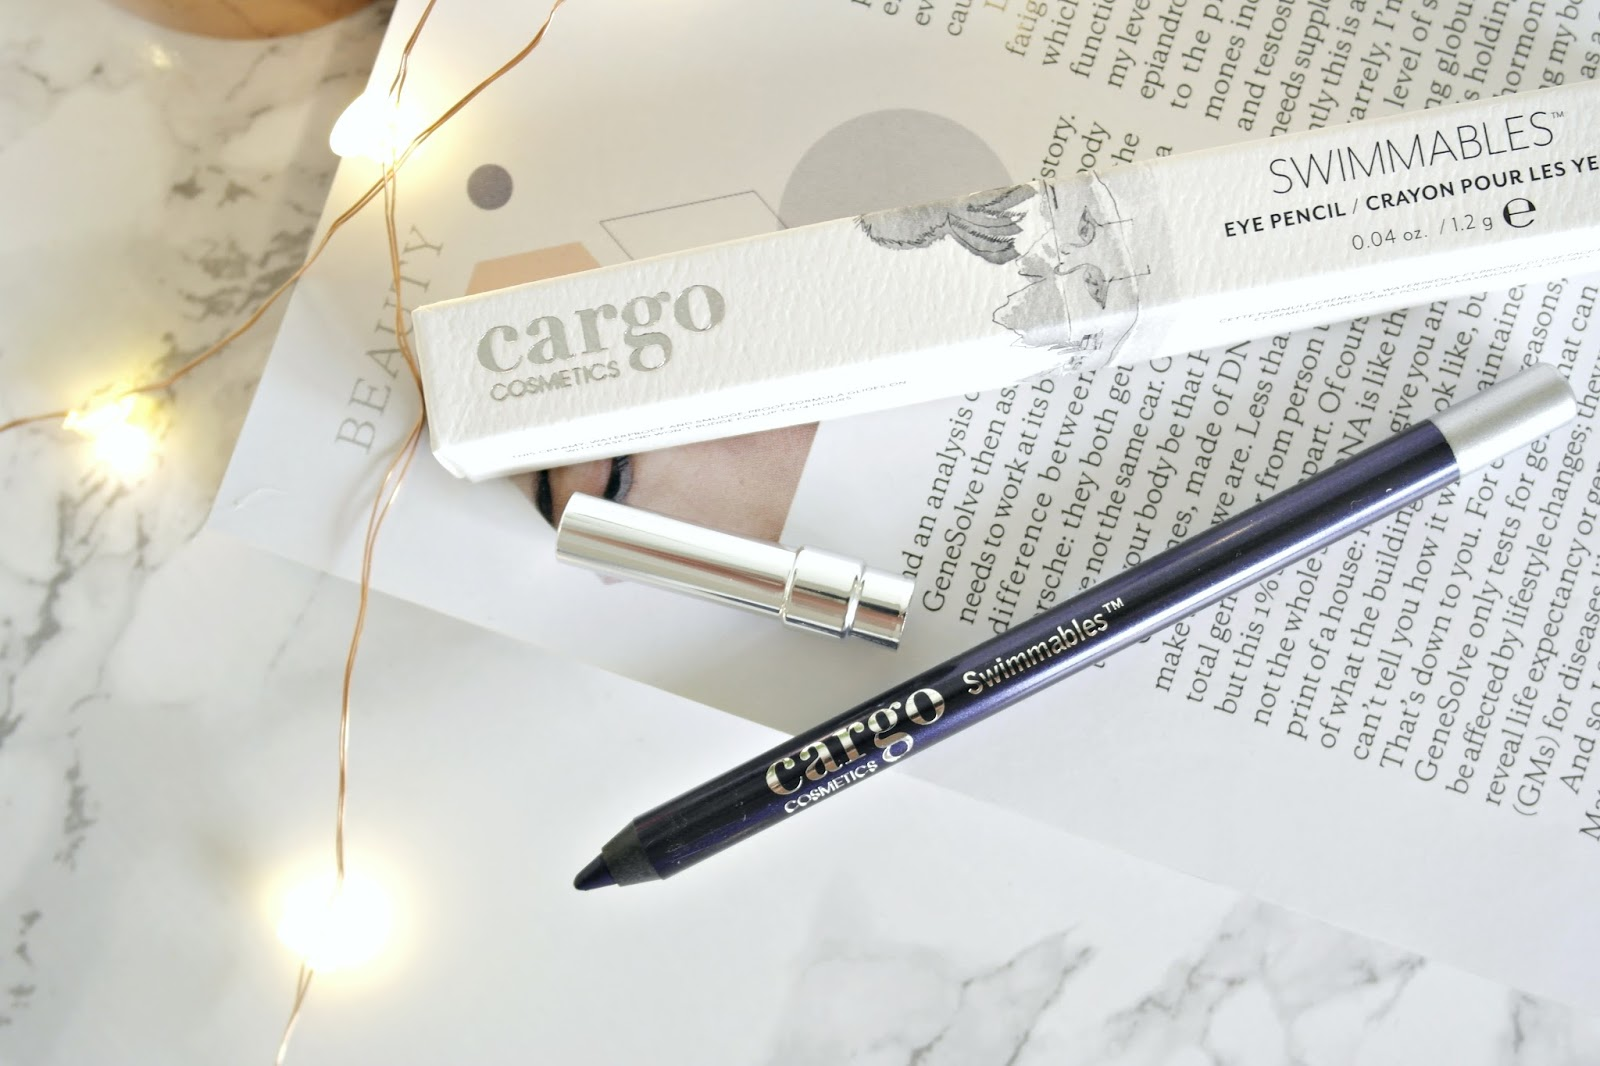 Cargo Cosmettics, Swimmables eye pencil, review